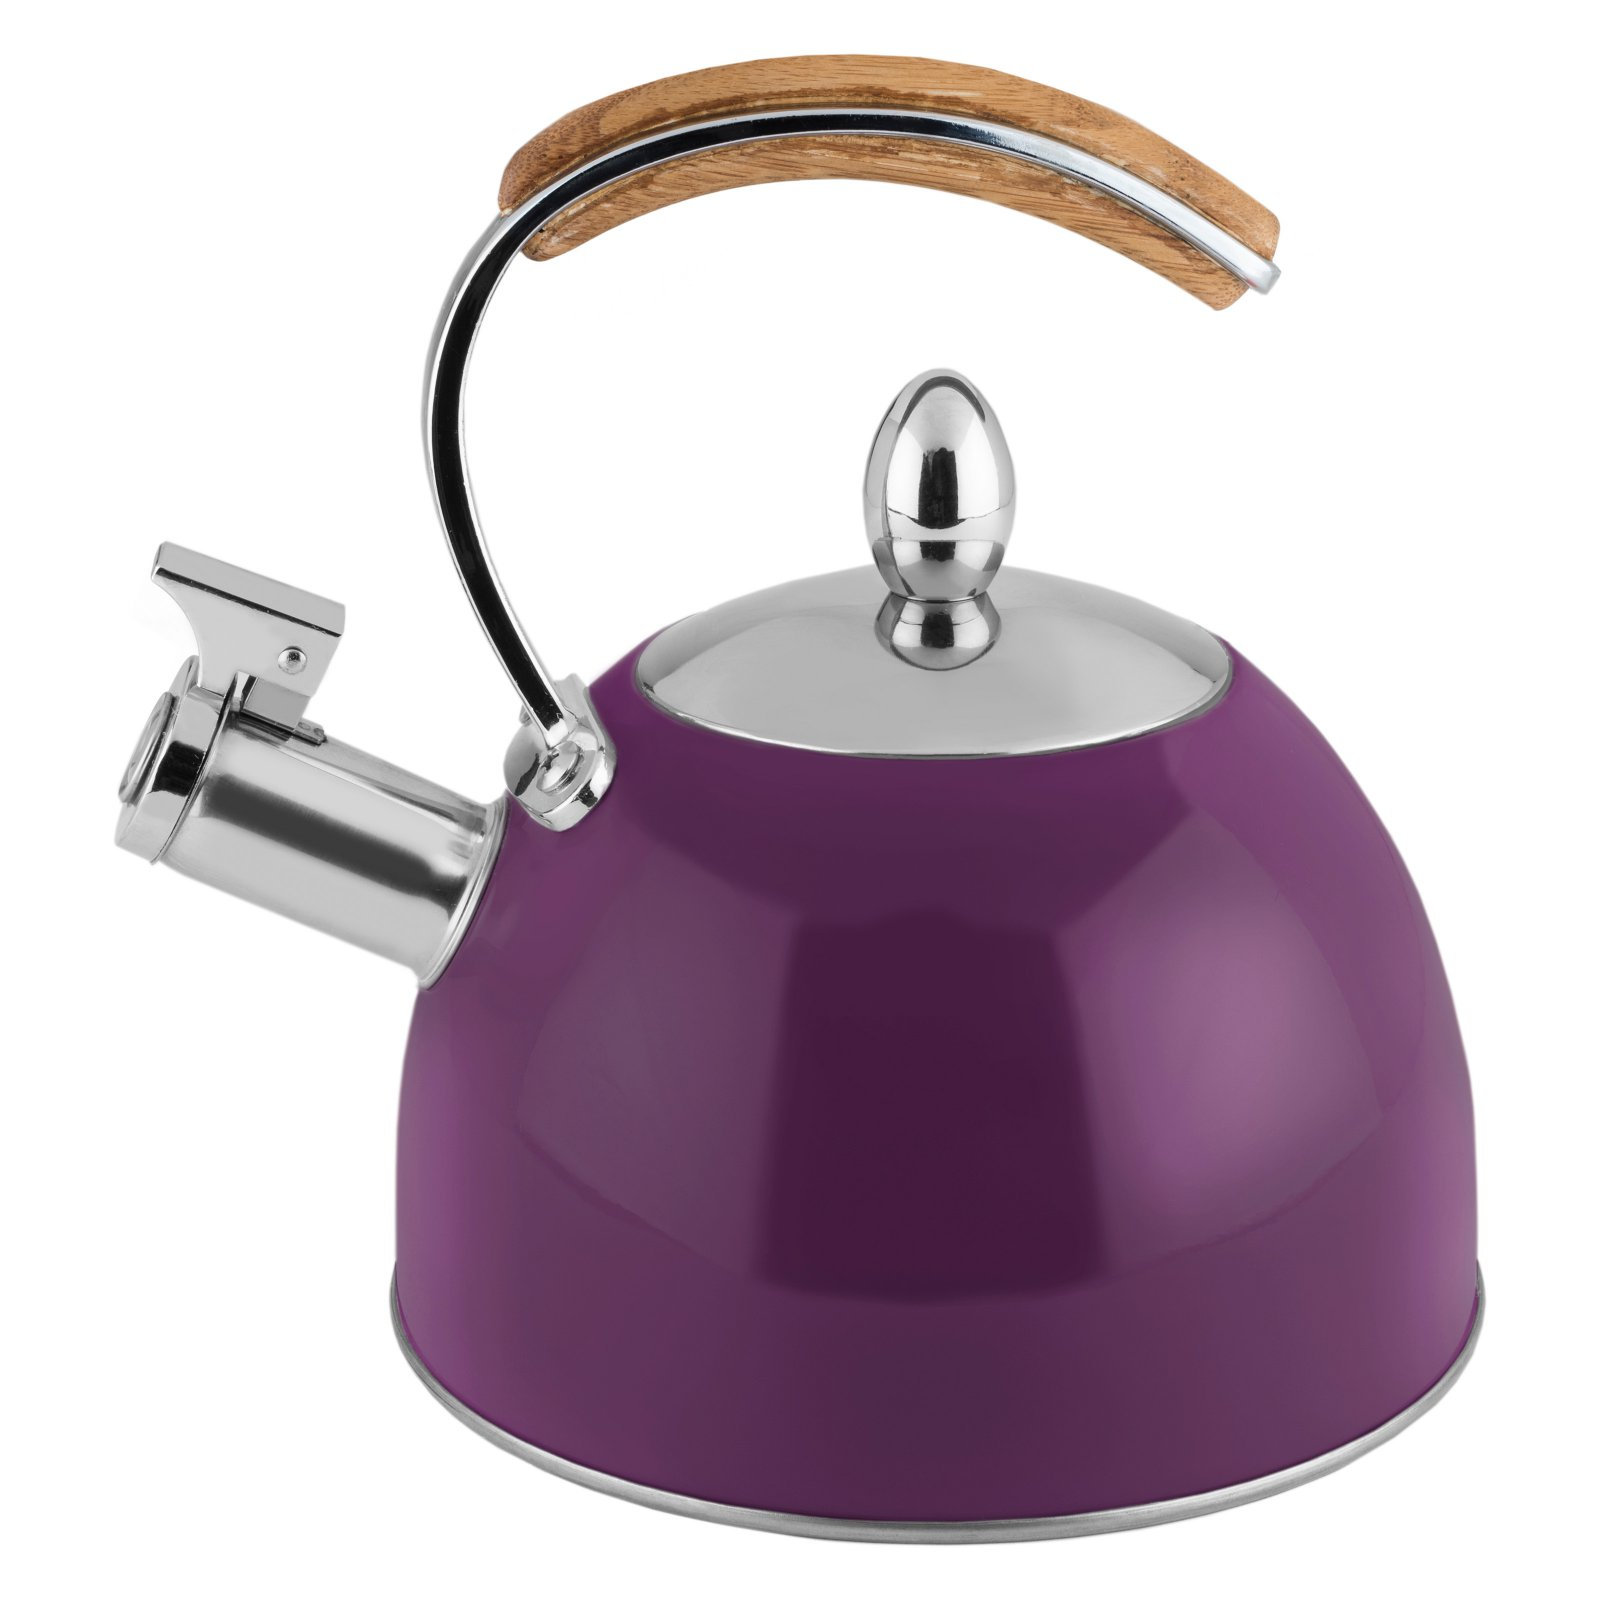 Pinky Up 5880 Presley Plum Tea Kettle by Pinky Up Multi Colored